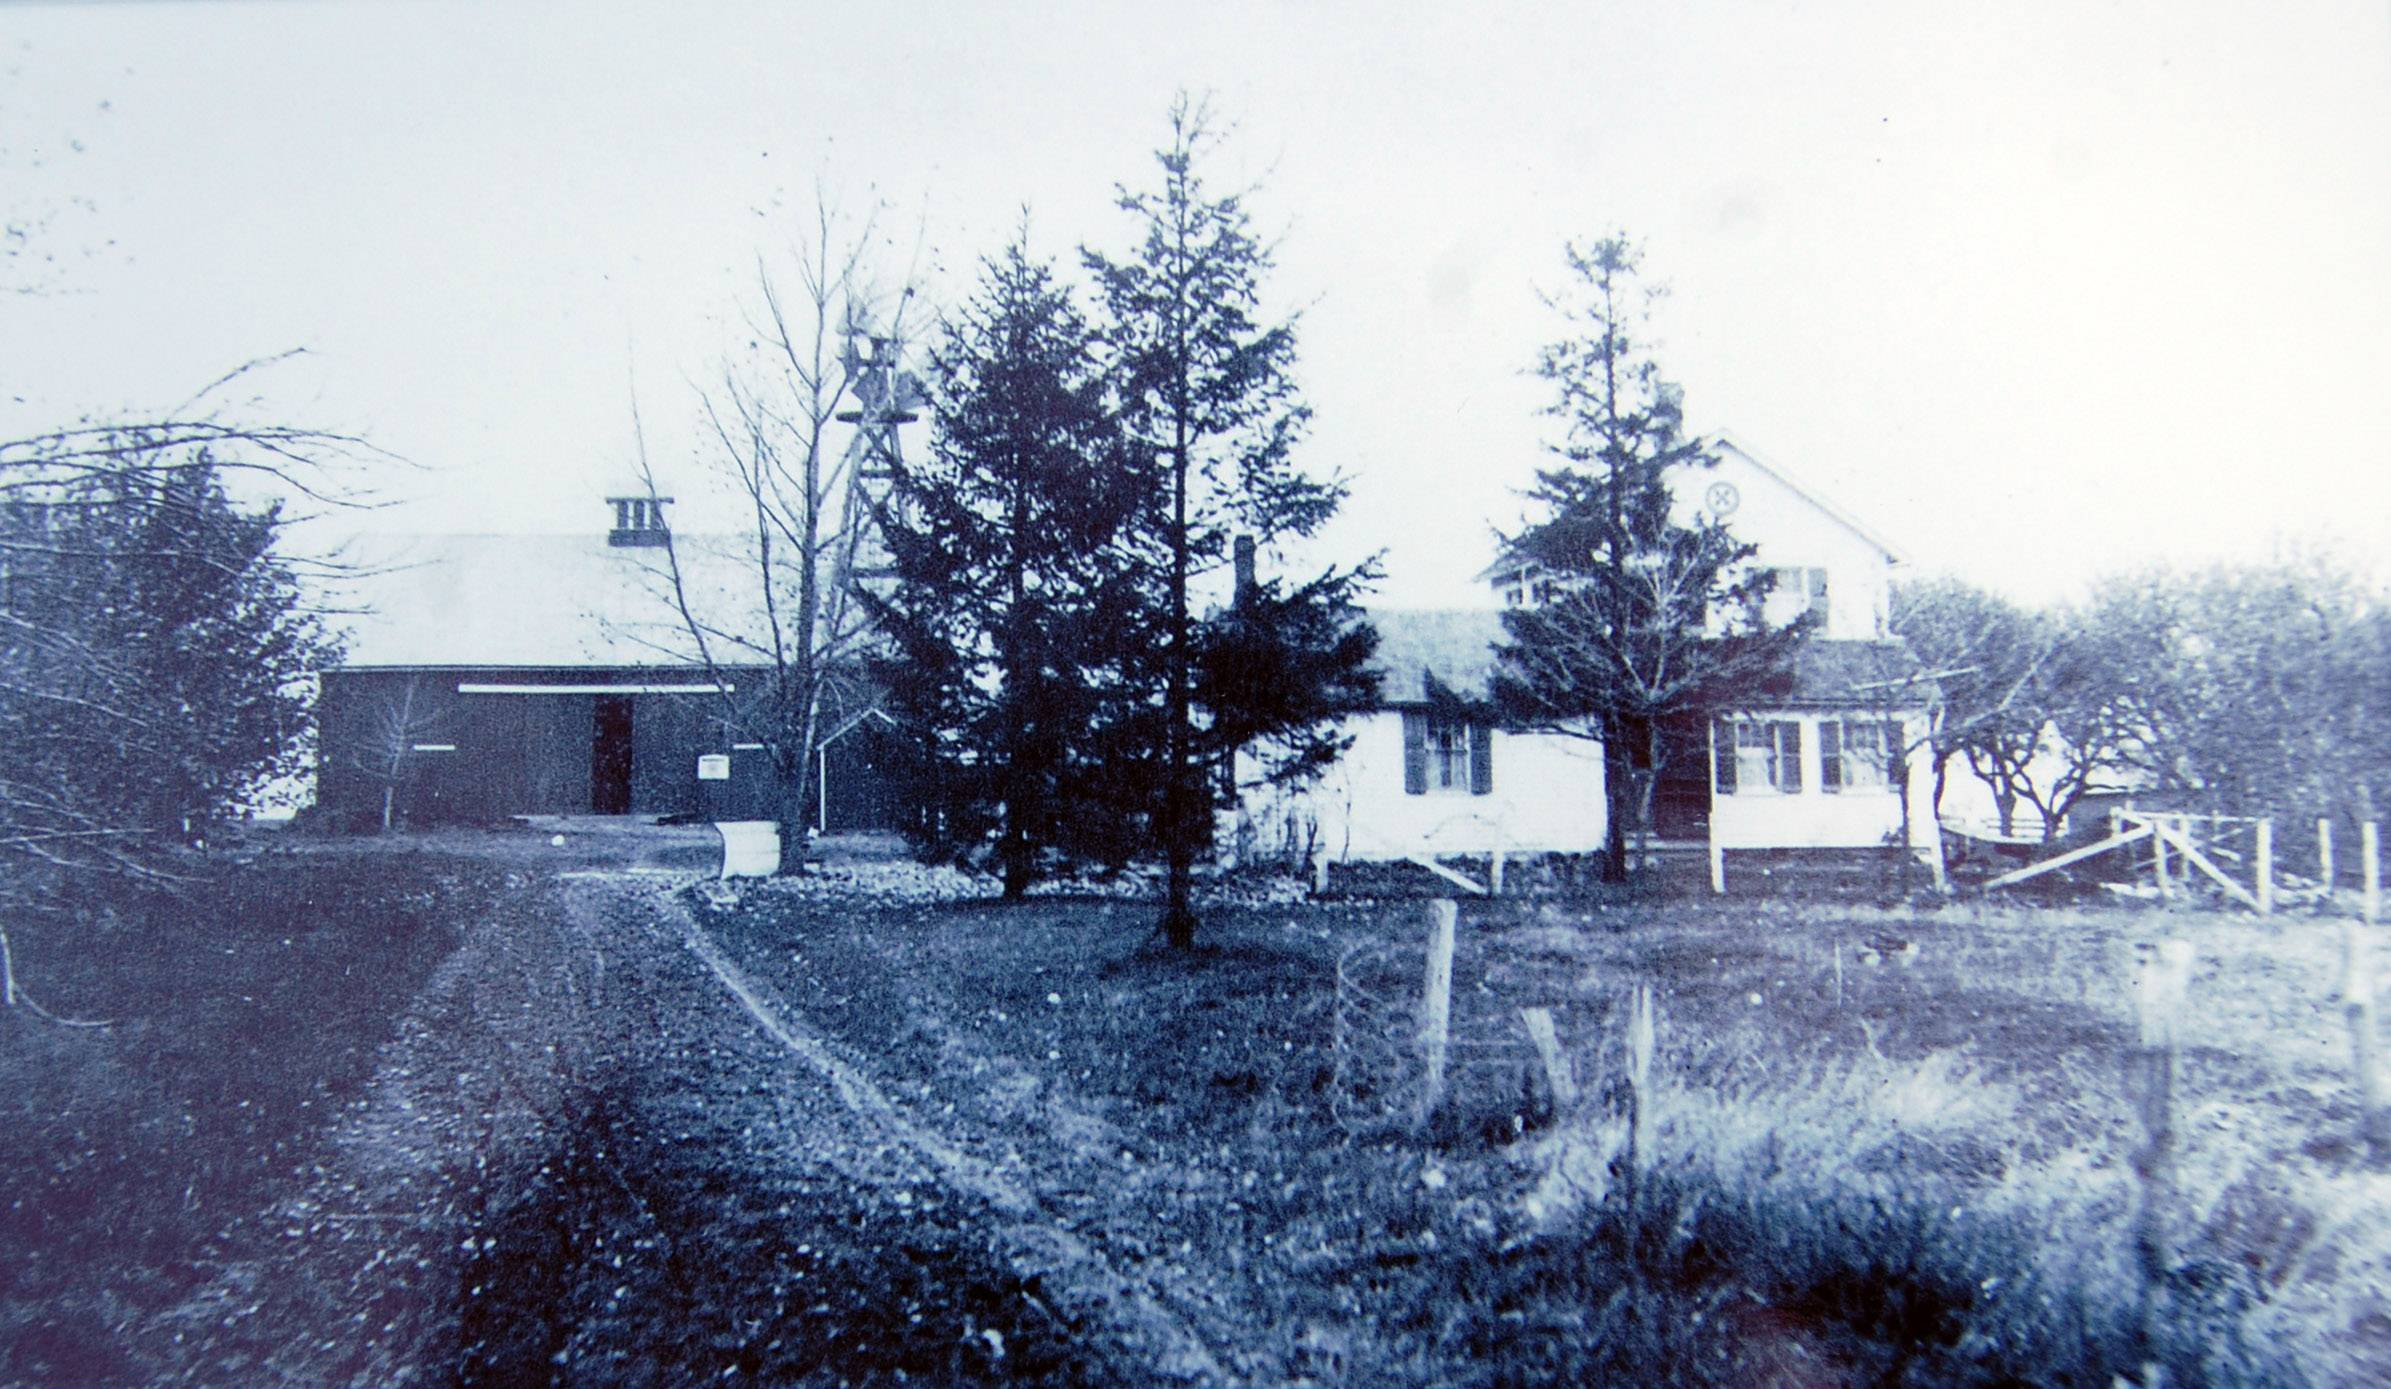 Original Sunderlage barn and wood house before a 1937 barn fire destroyed it.